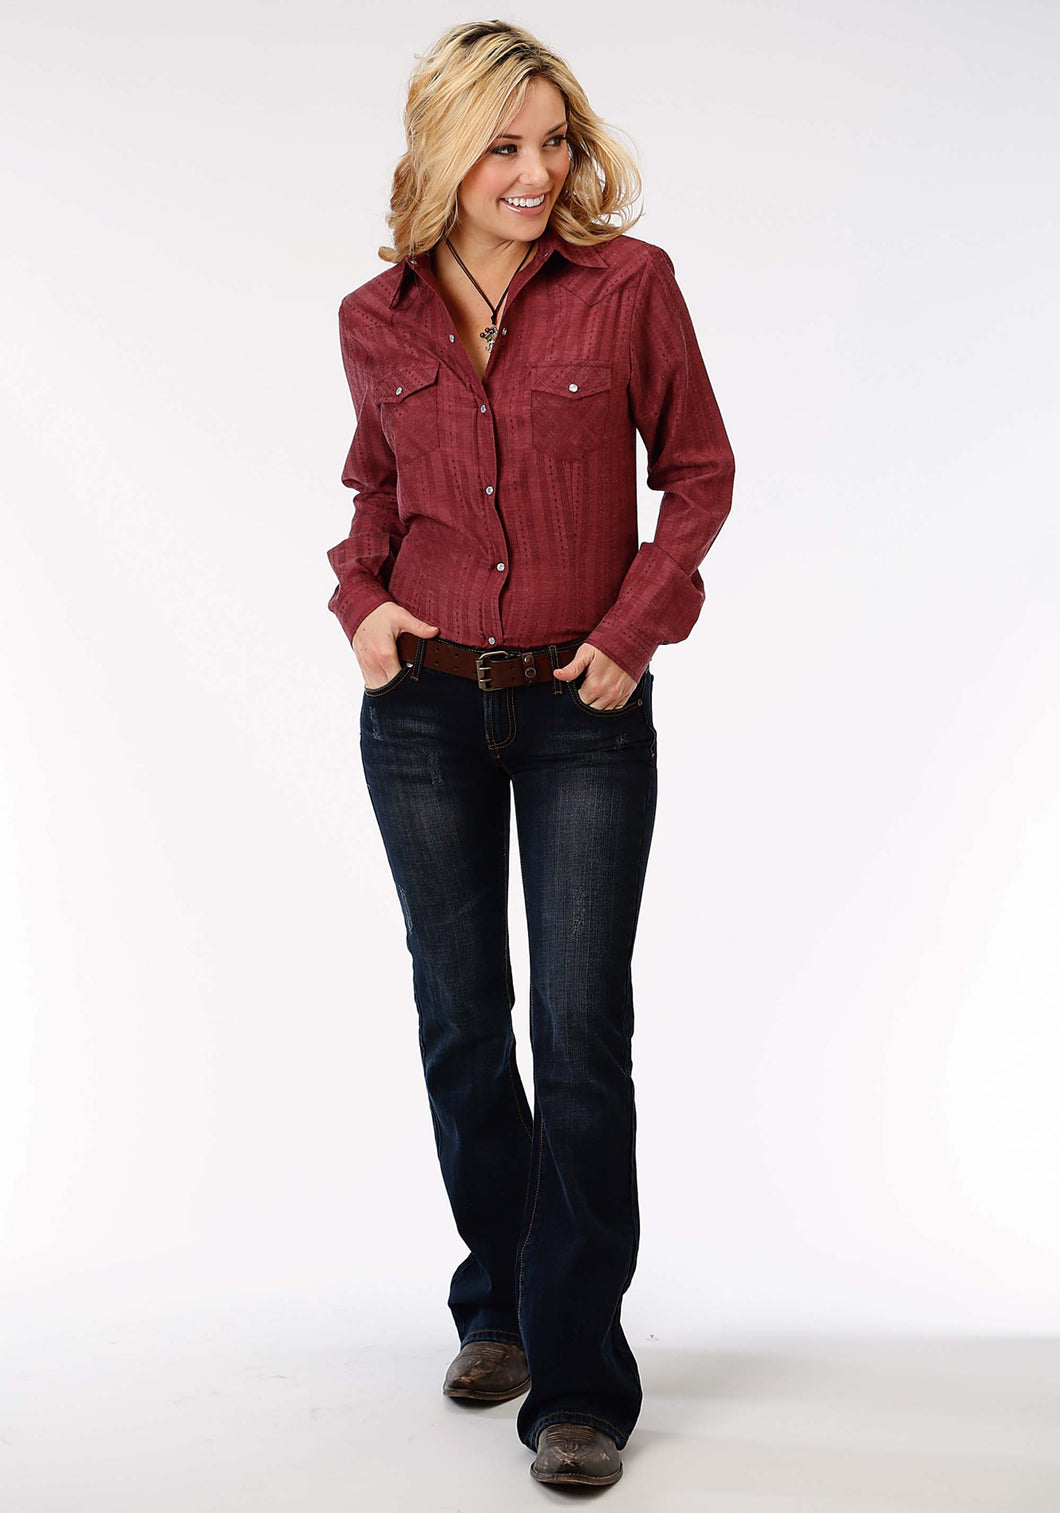 Karman Classics- 8020 Tone On Tone Solid Polyc Womens Long Sleeve Shirt 1196 Tone On Tone Dobby Wstripe